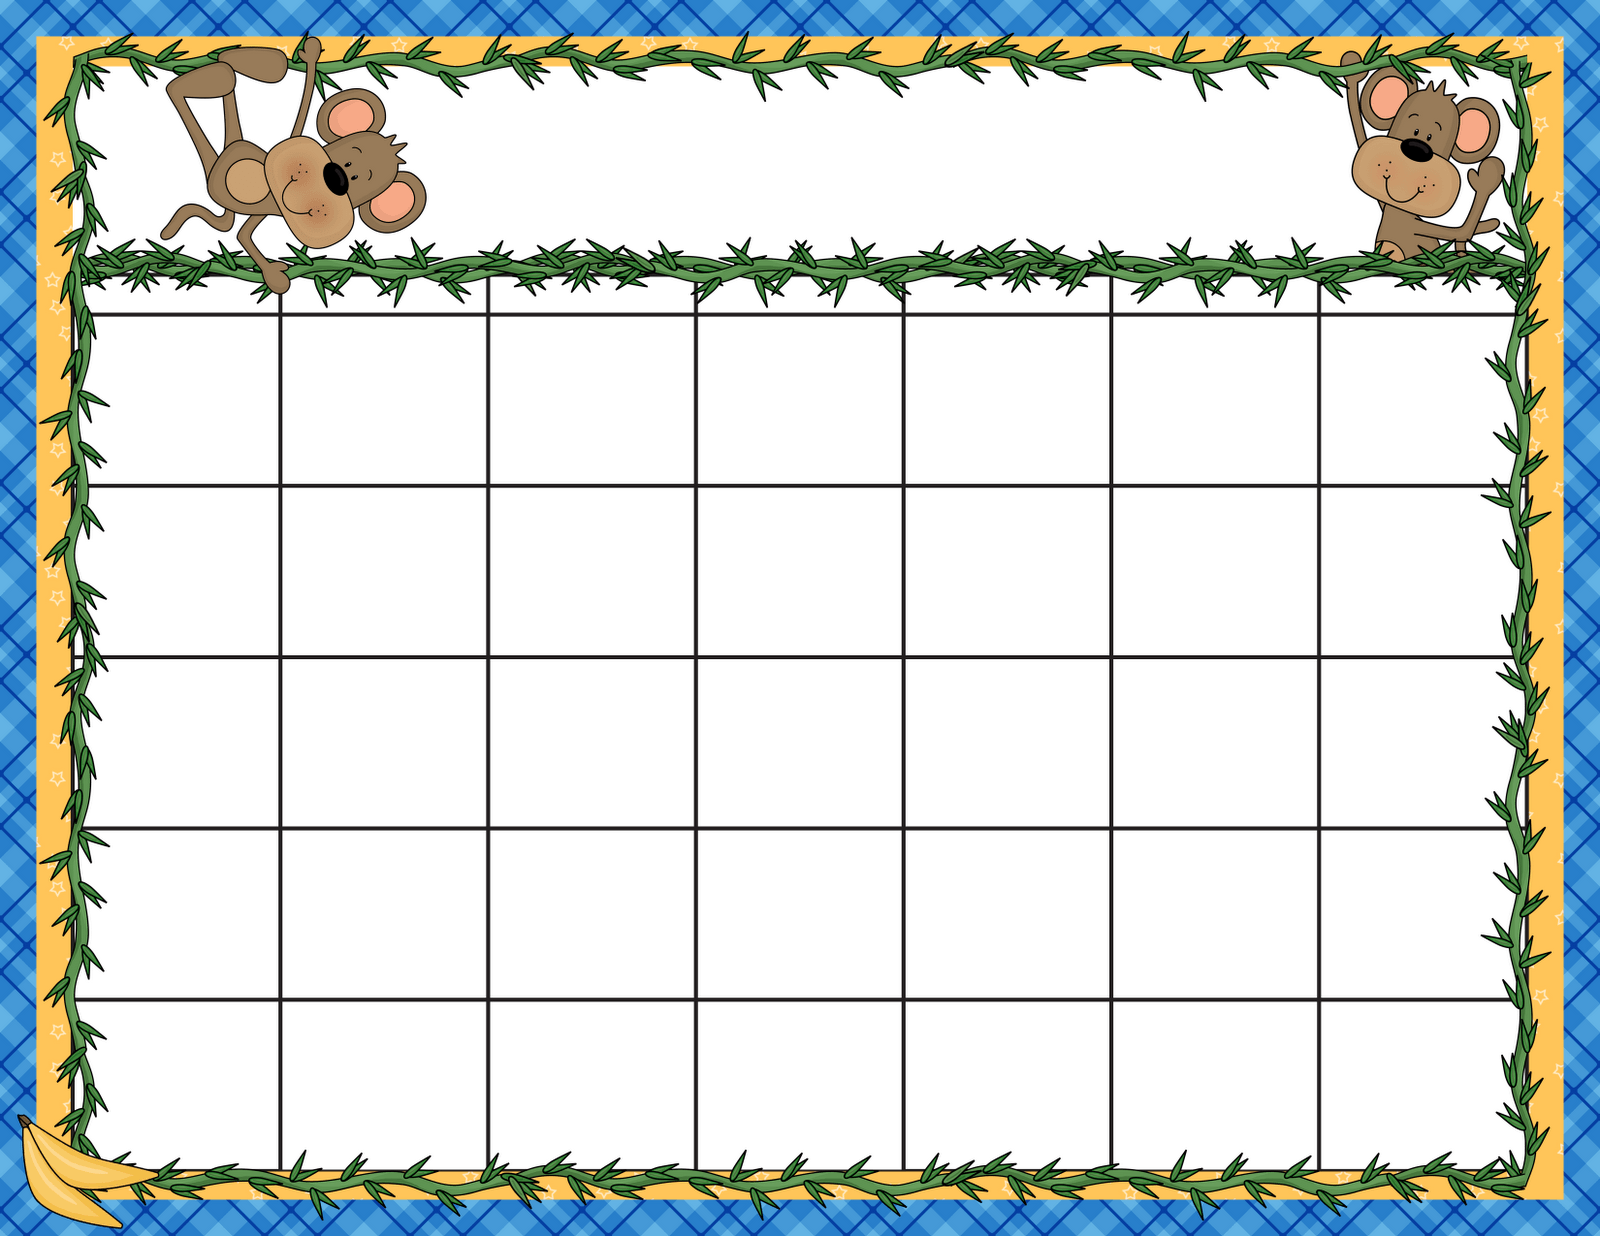 August preschool calendar clipart.